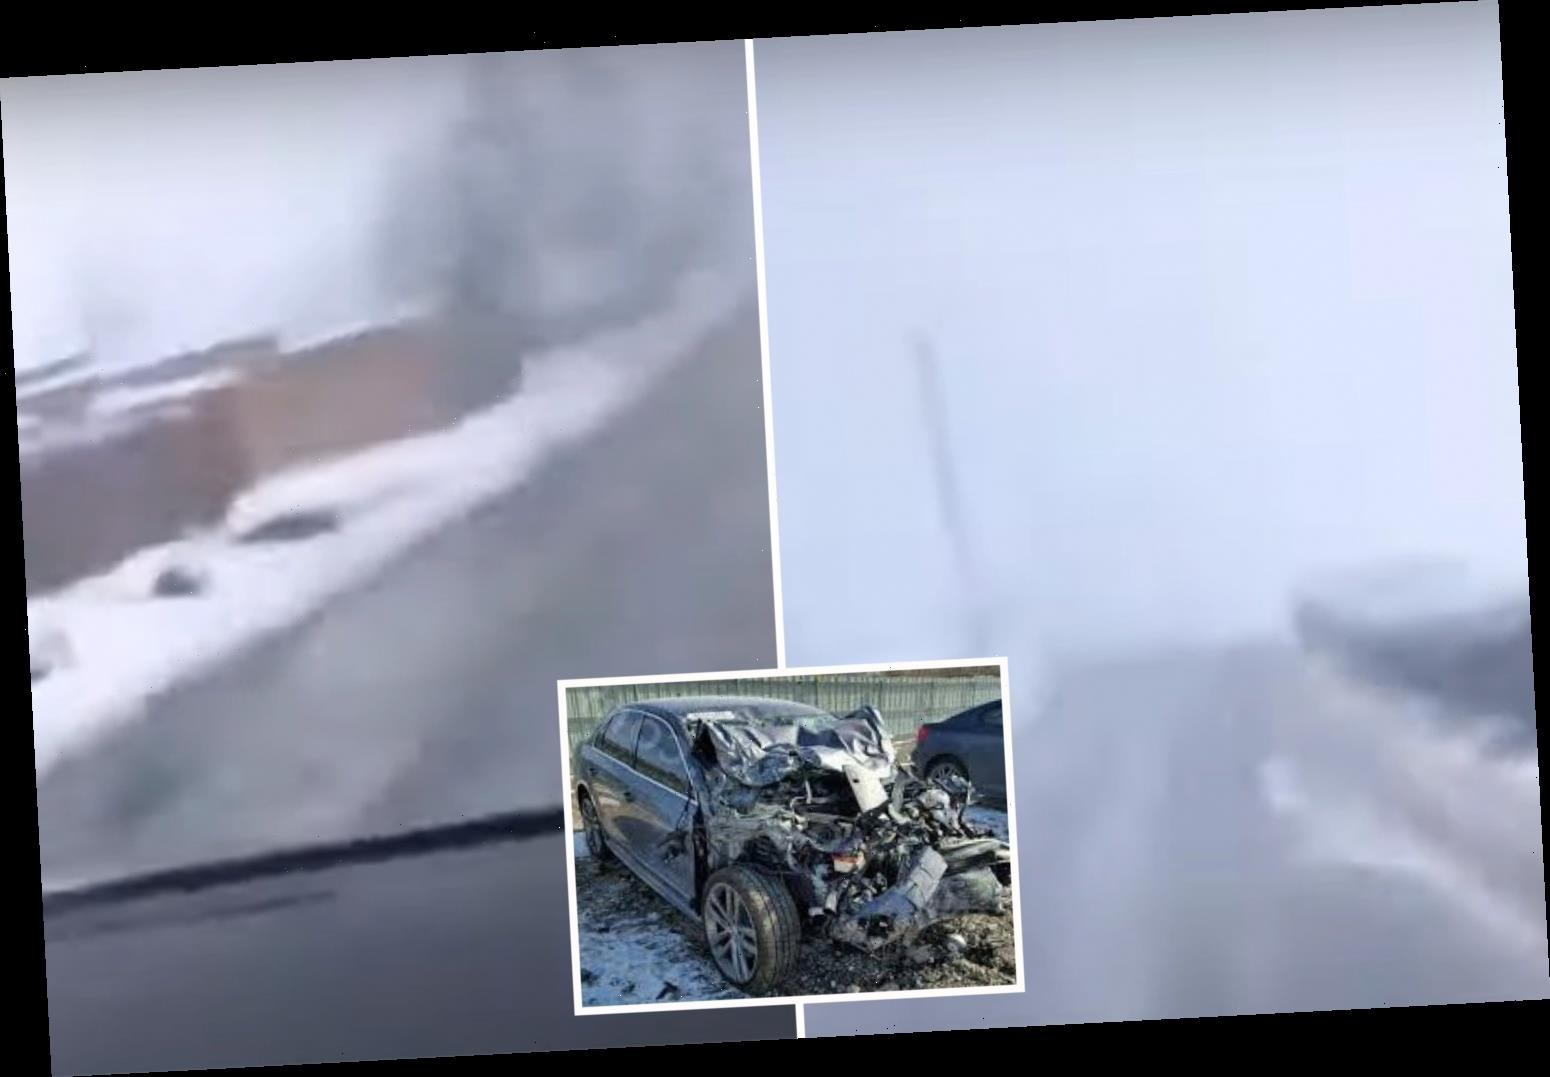 Scary moment VW racing down icy lane spins out of control and crashes in heavy snow